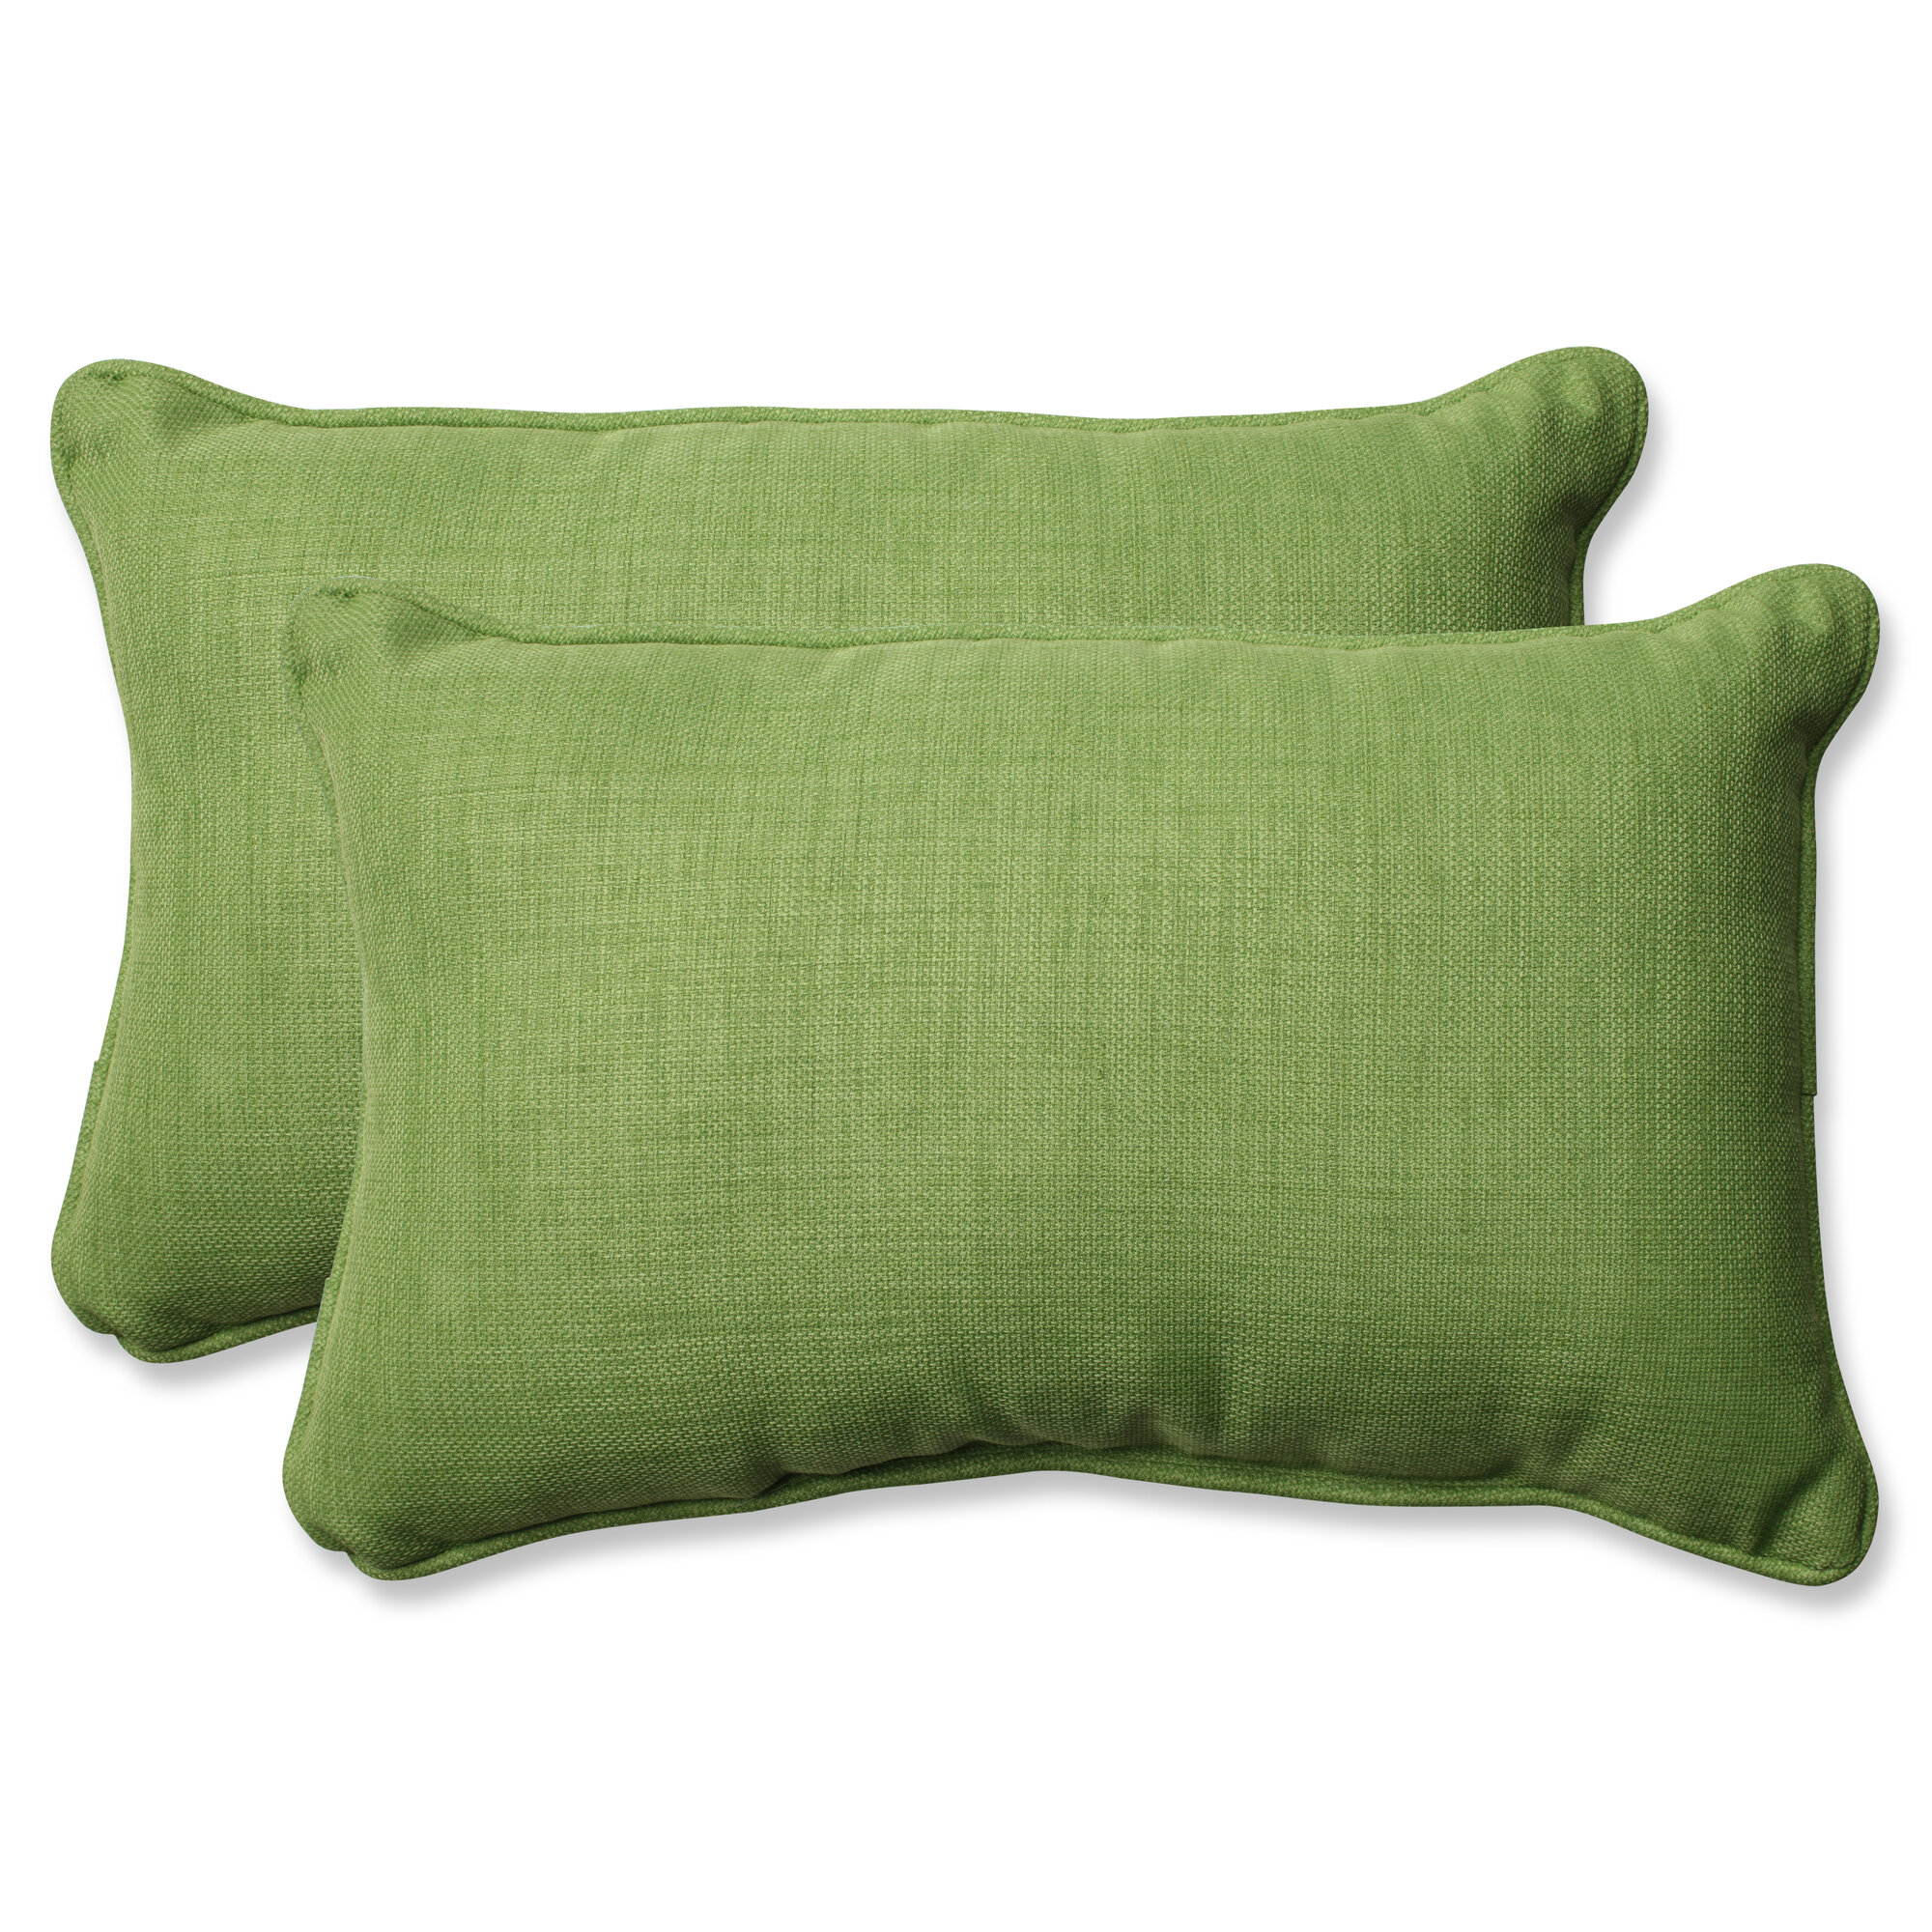 Outdoor Decorative Pillow Sets : Pillow Perfect Rave Lawn Indoor/Outdoor Throw Pillow Set of 2